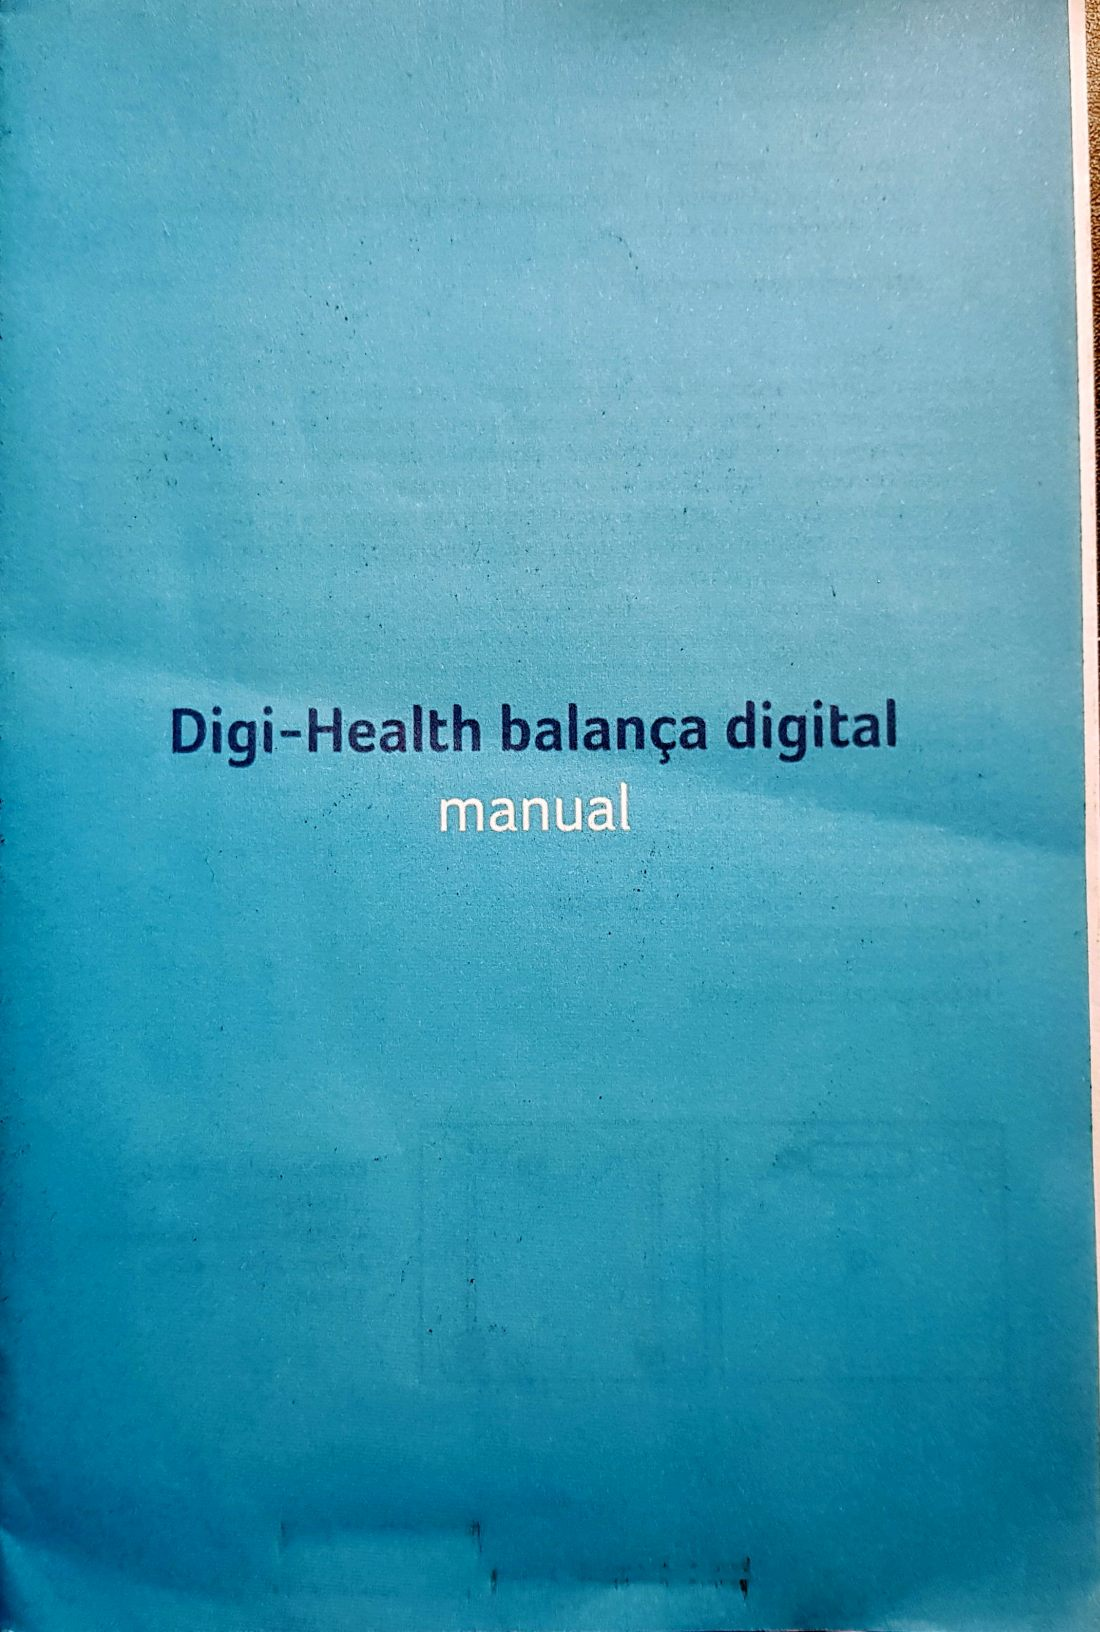 Manual Balanca Digital Digi-Health - Multilaser